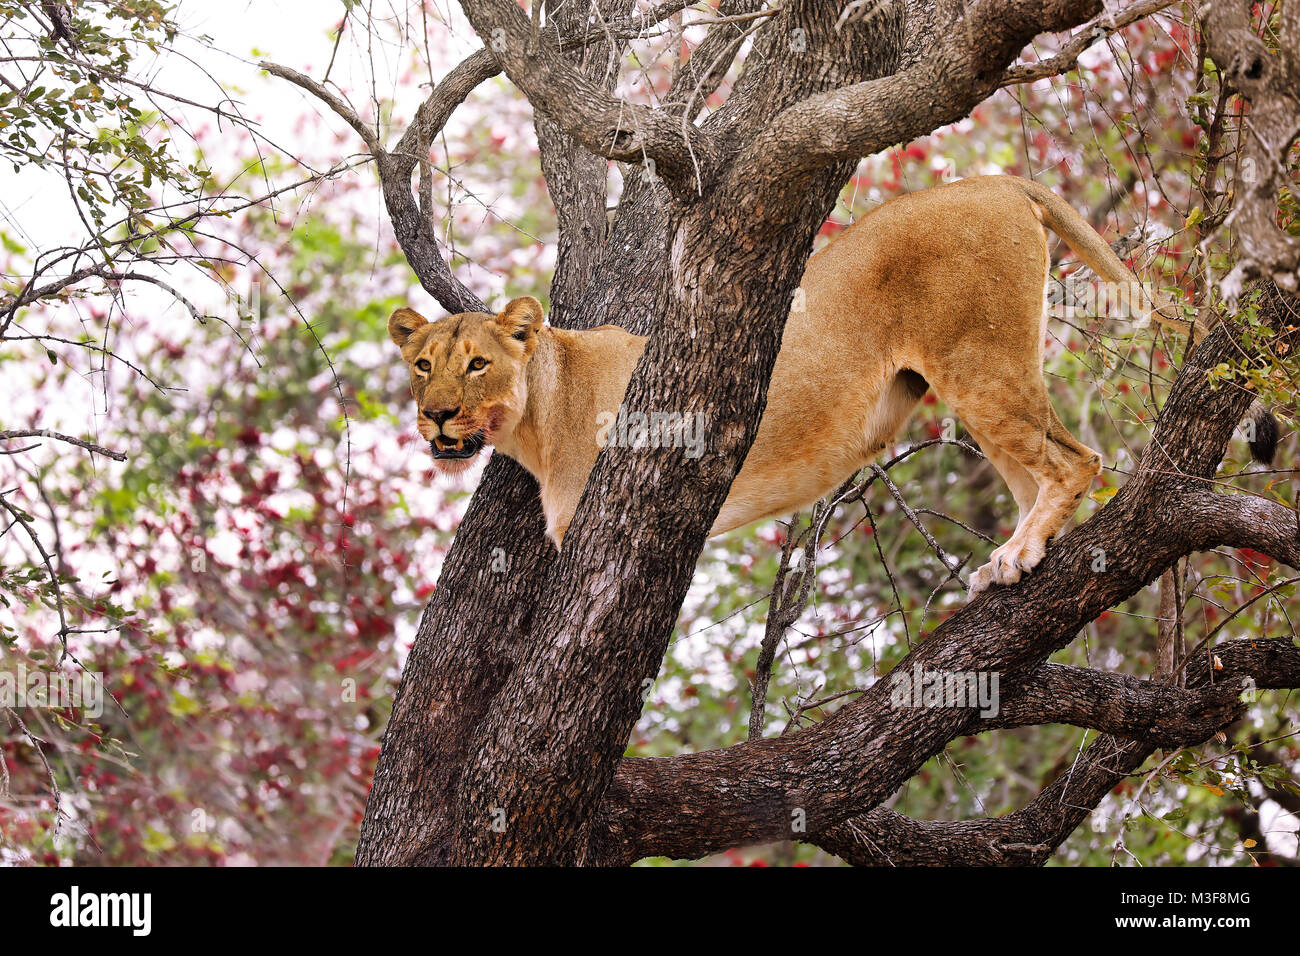 lioness stands in a tree, Kruger NP, South Africa Stock Photo